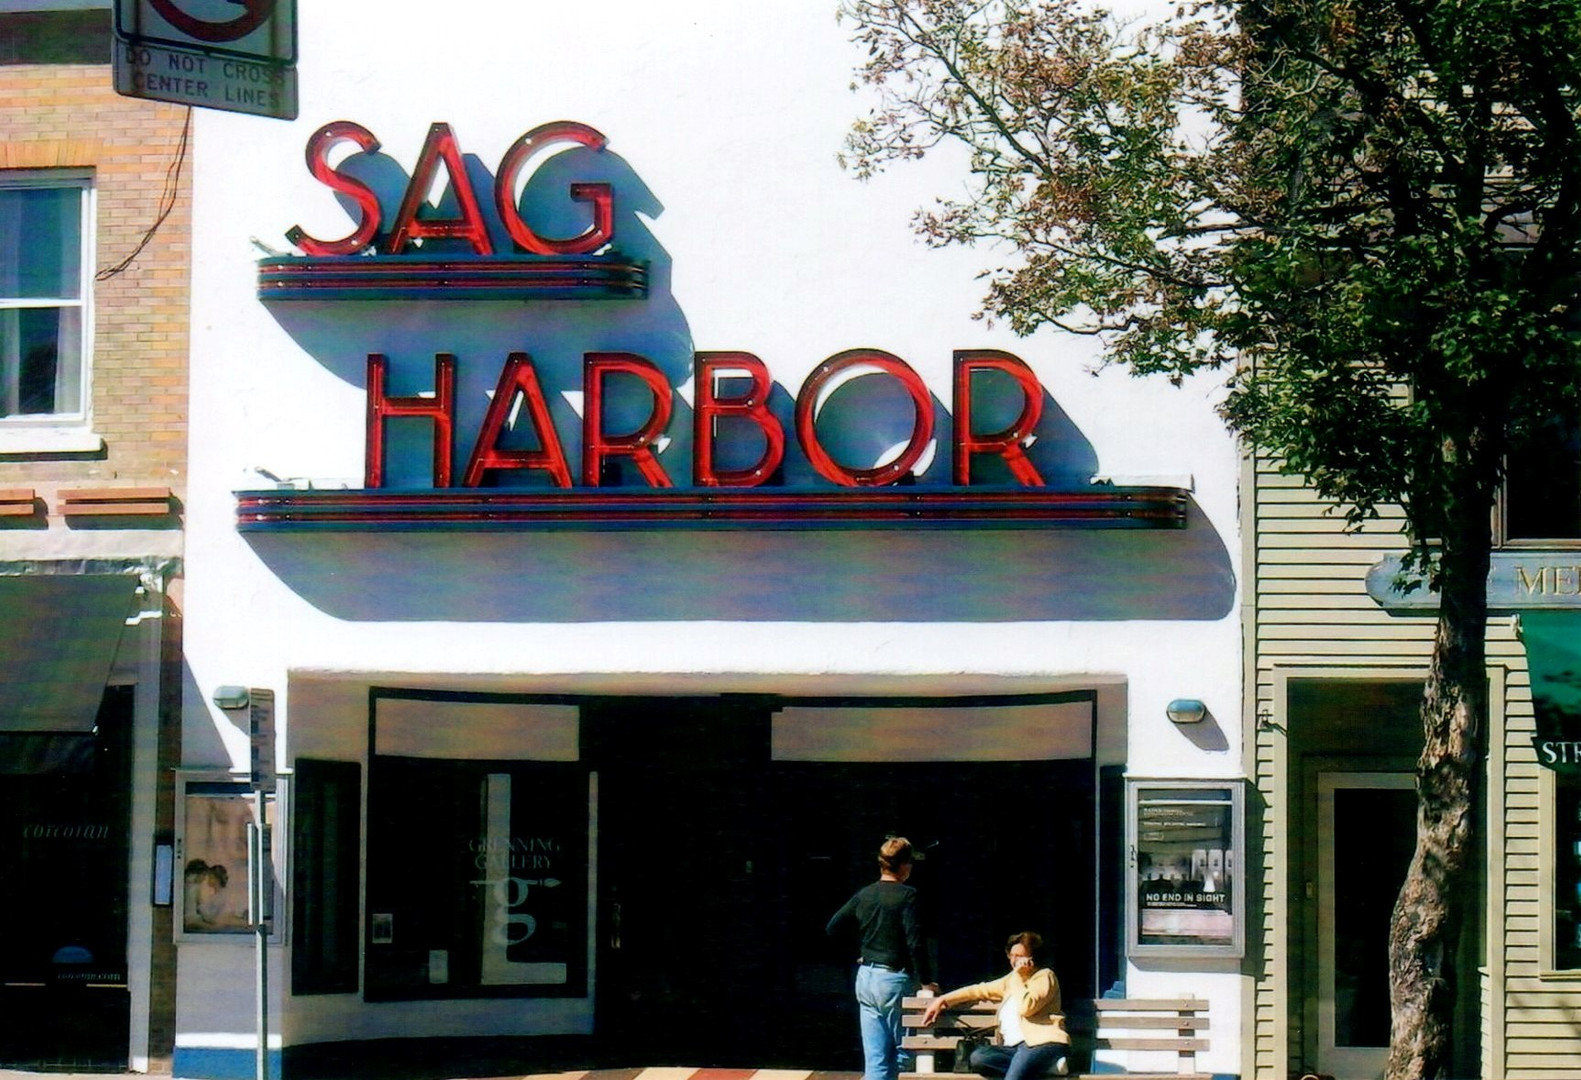 Lunch in Sag Harbor